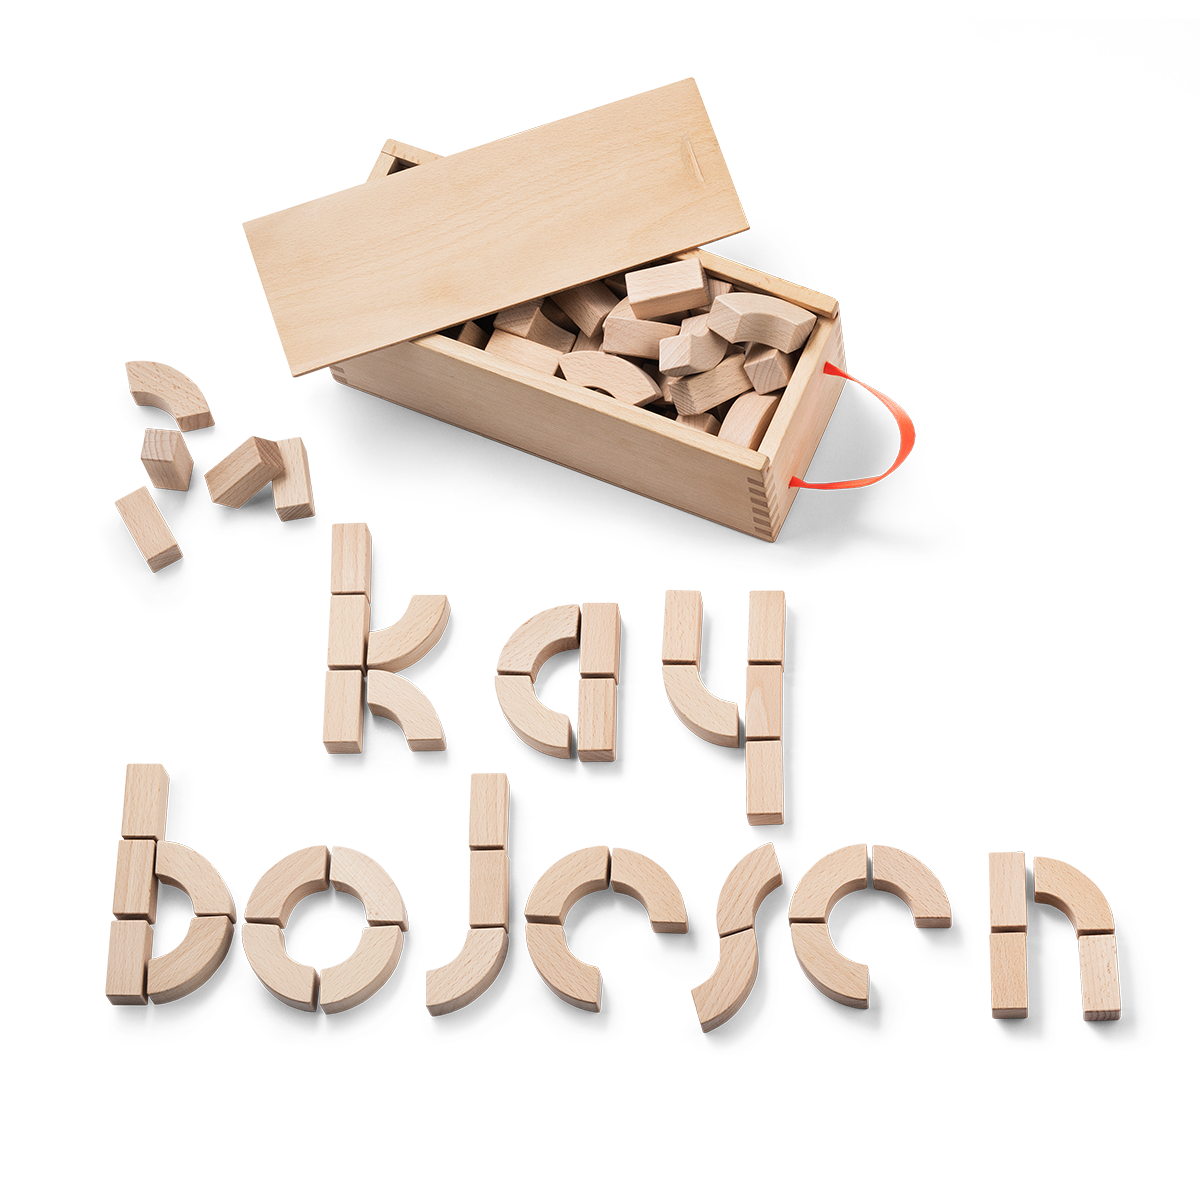 alphabet blocks by kay bojesen great gift idea buy online. Black Bedroom Furniture Sets. Home Design Ideas